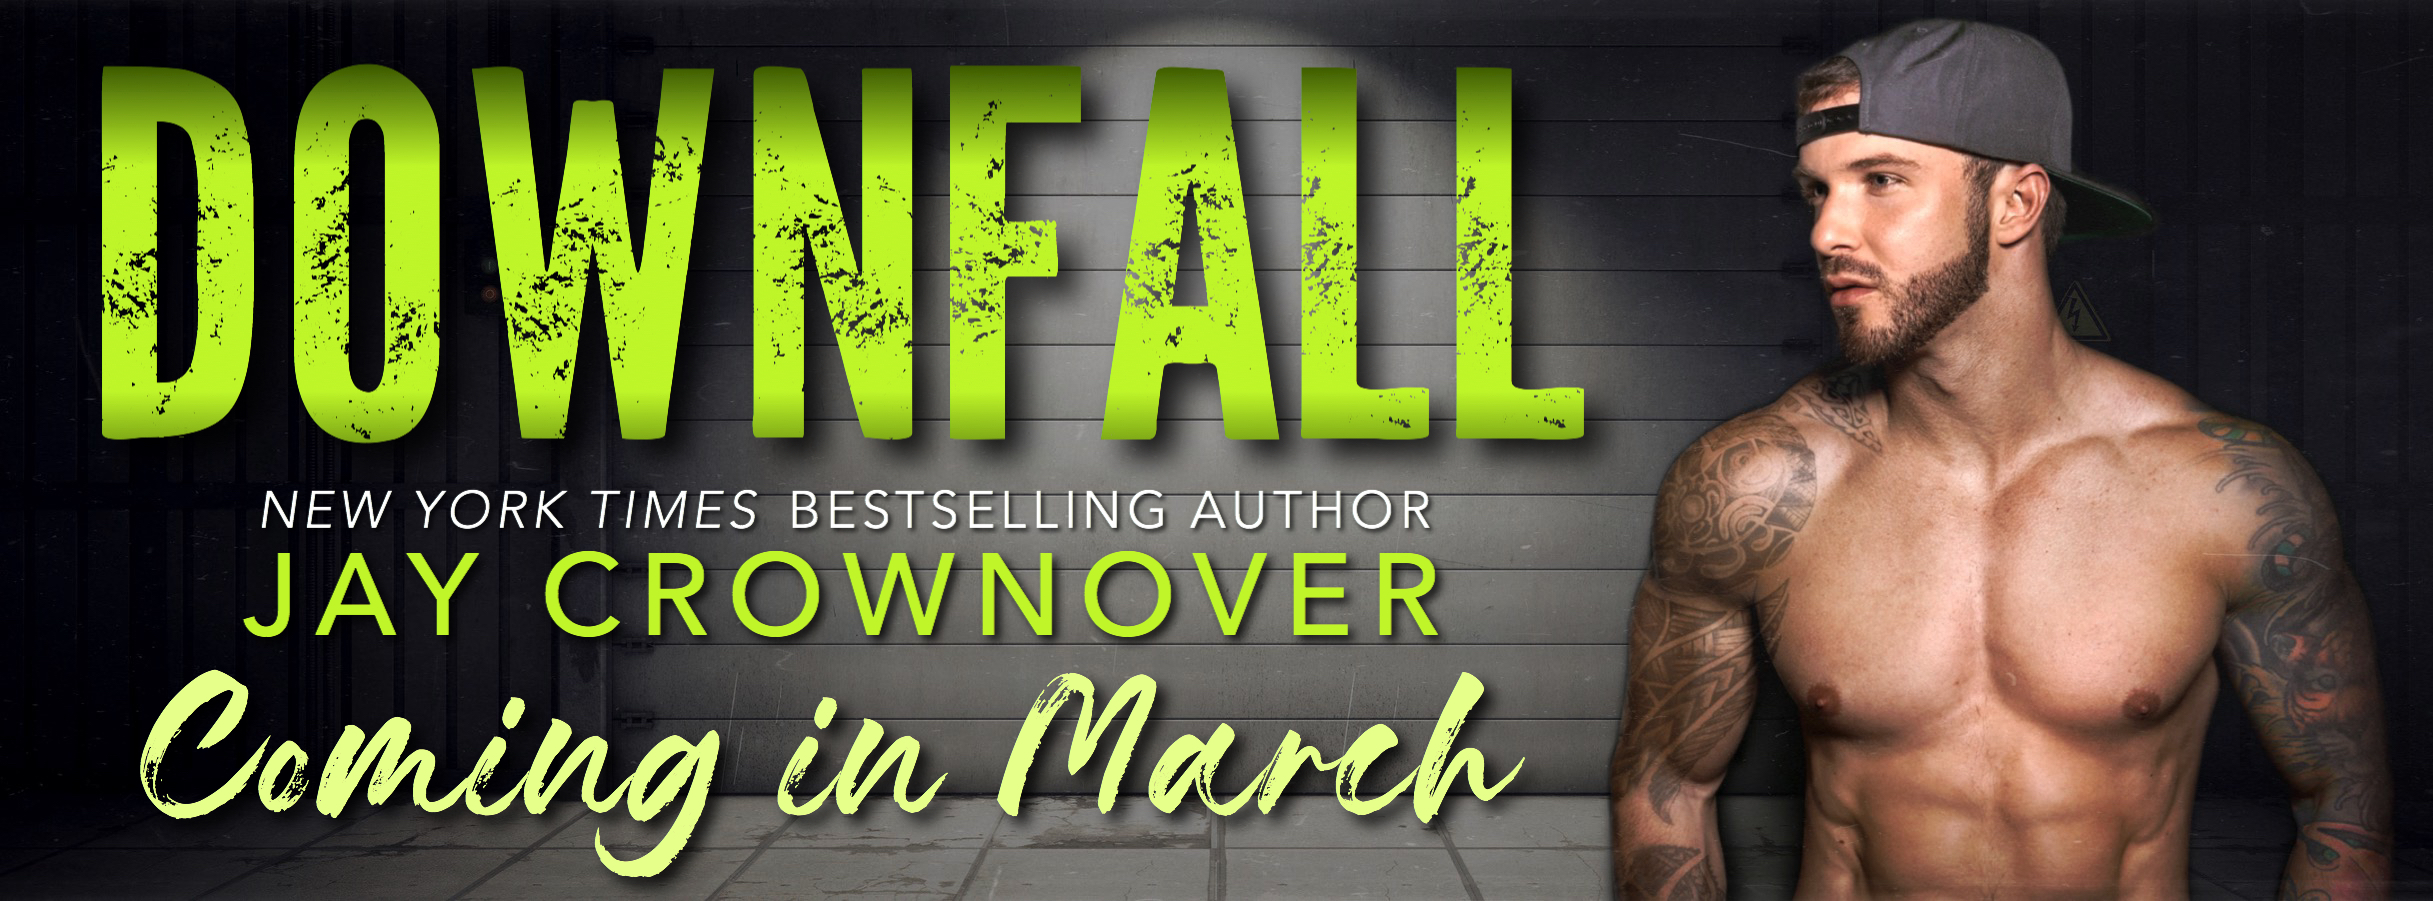 Jay Crownover's DOWNFALL – Cover Reveal